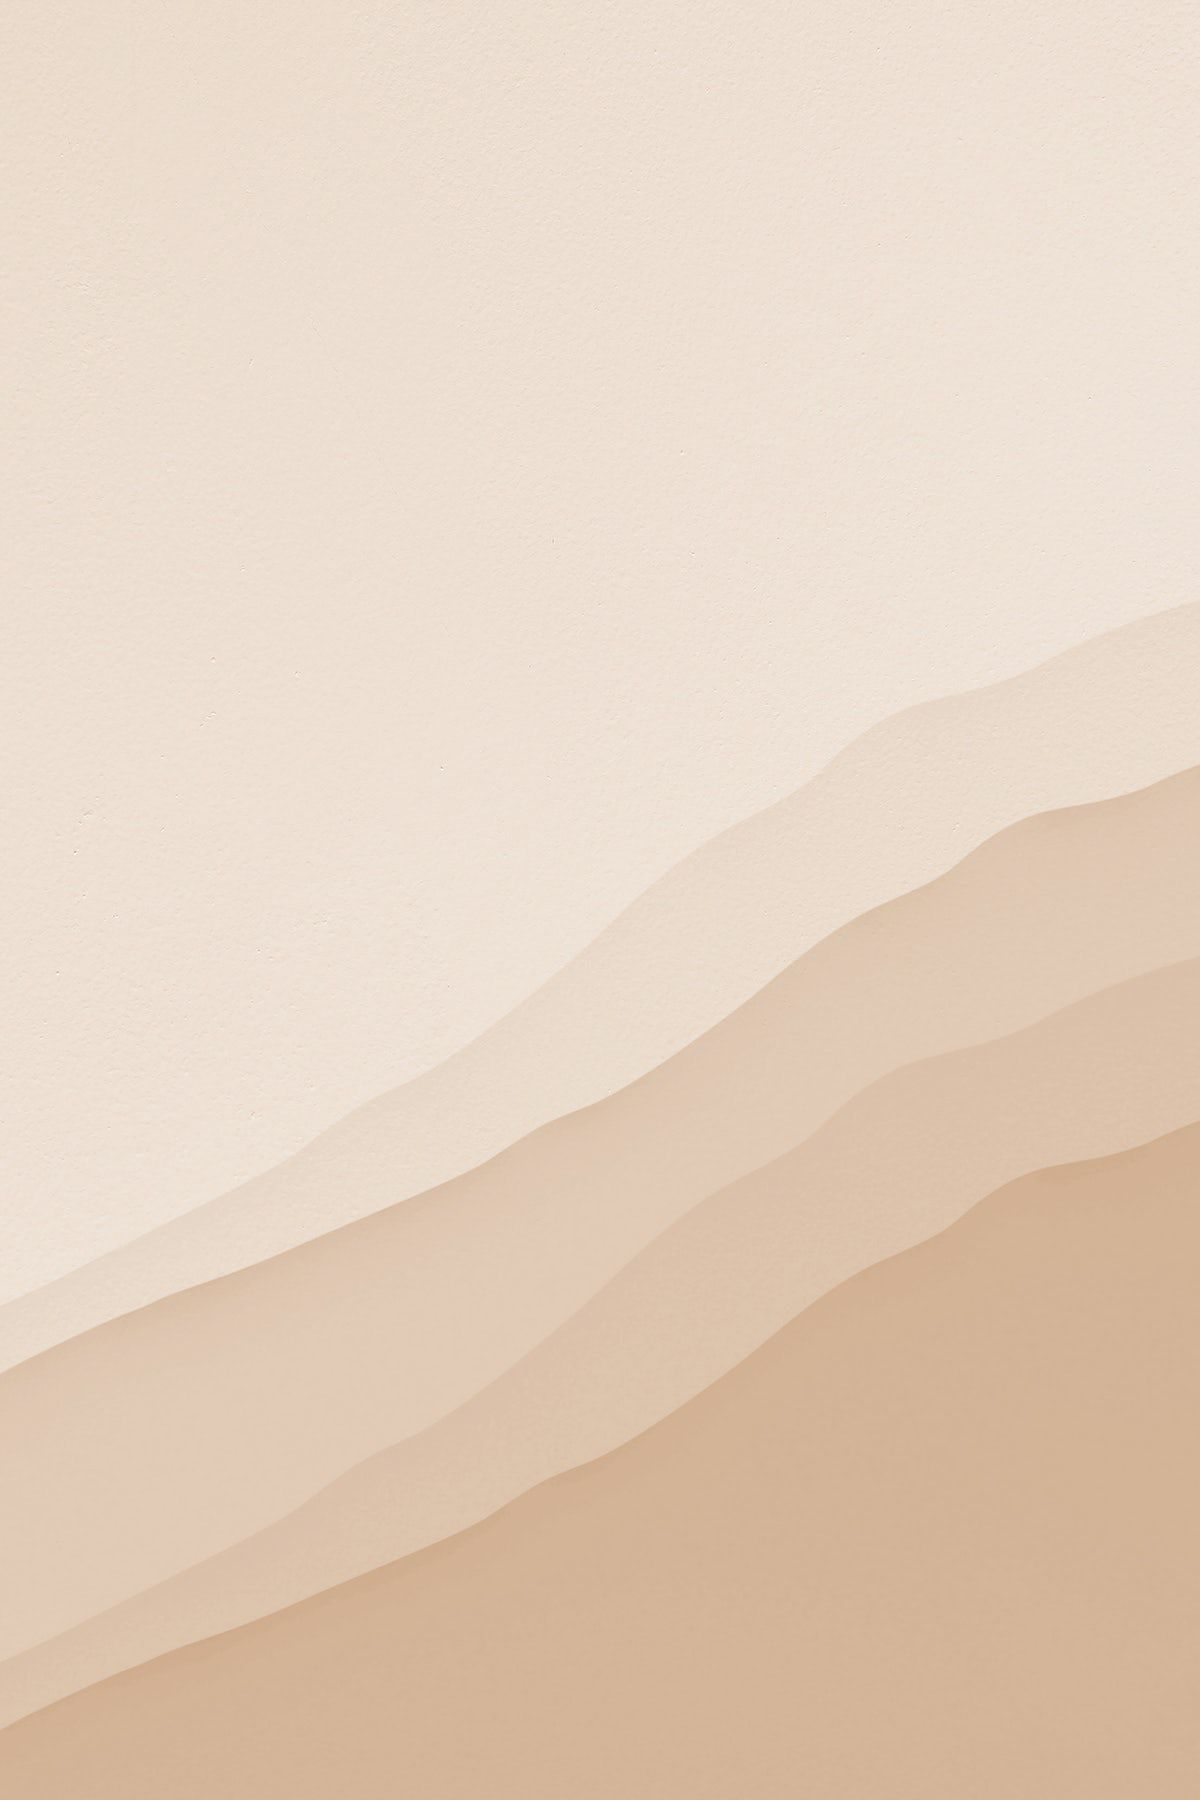 Abstract beige wallpaper background image   free image by rawpixel ...